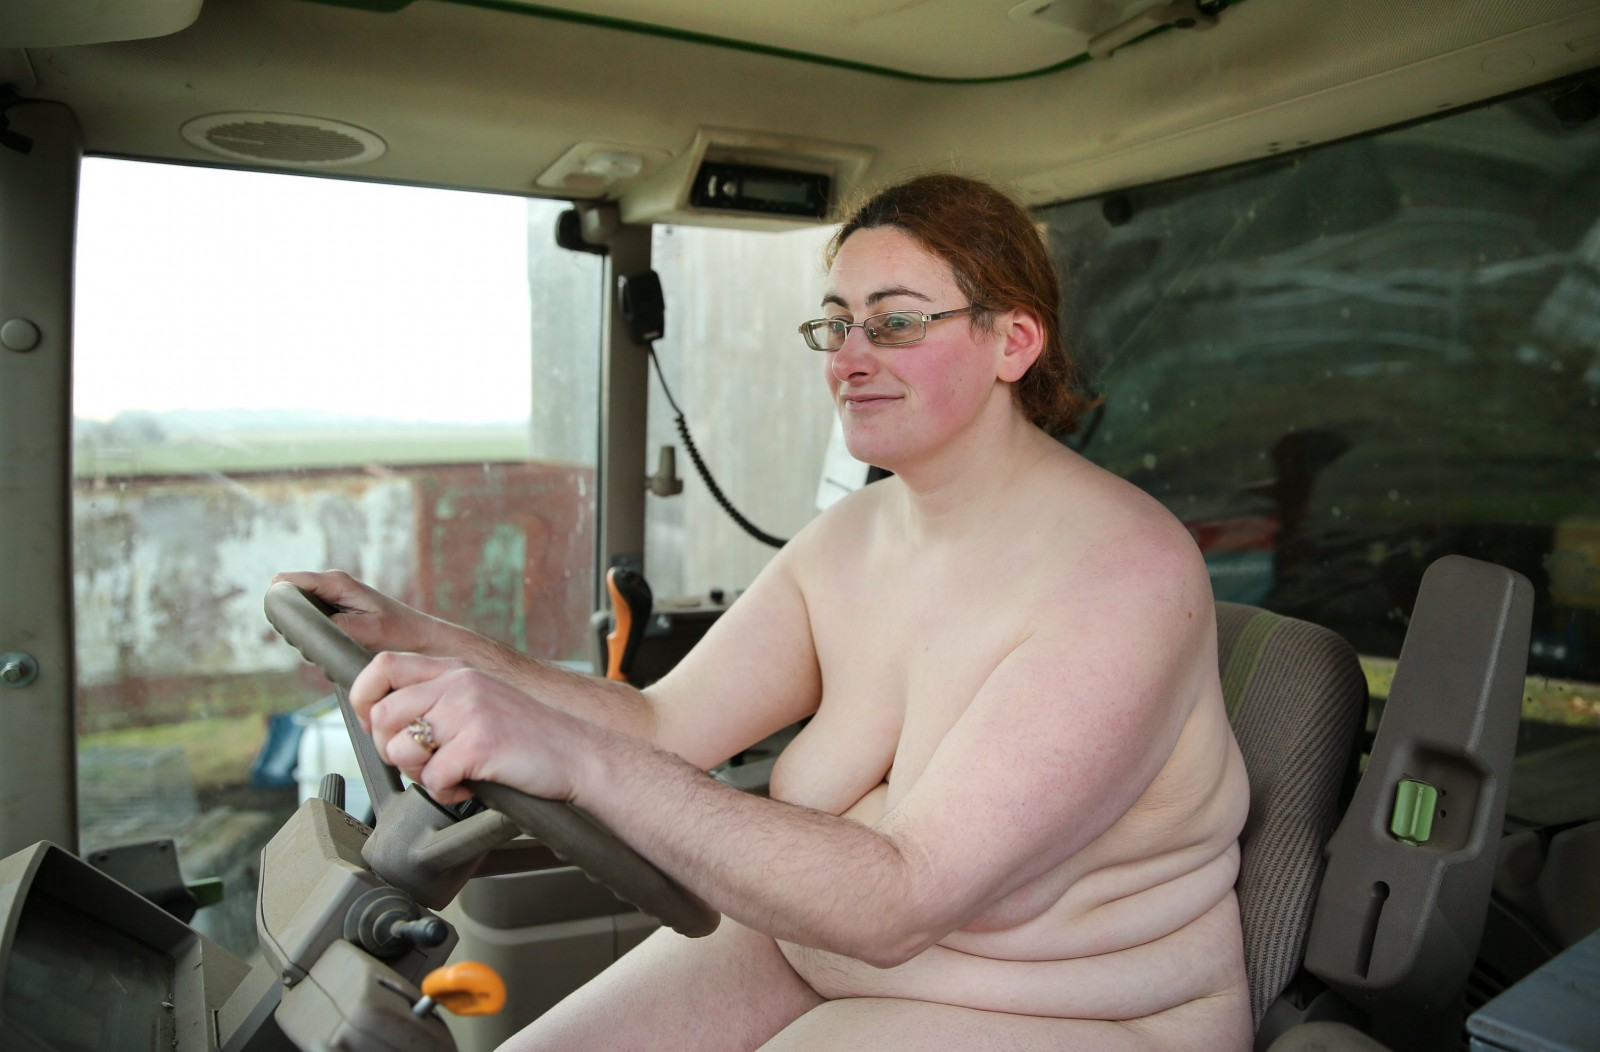 Naked warning! Farmer's daughter exposes the cheeky goings-on in her family's fields